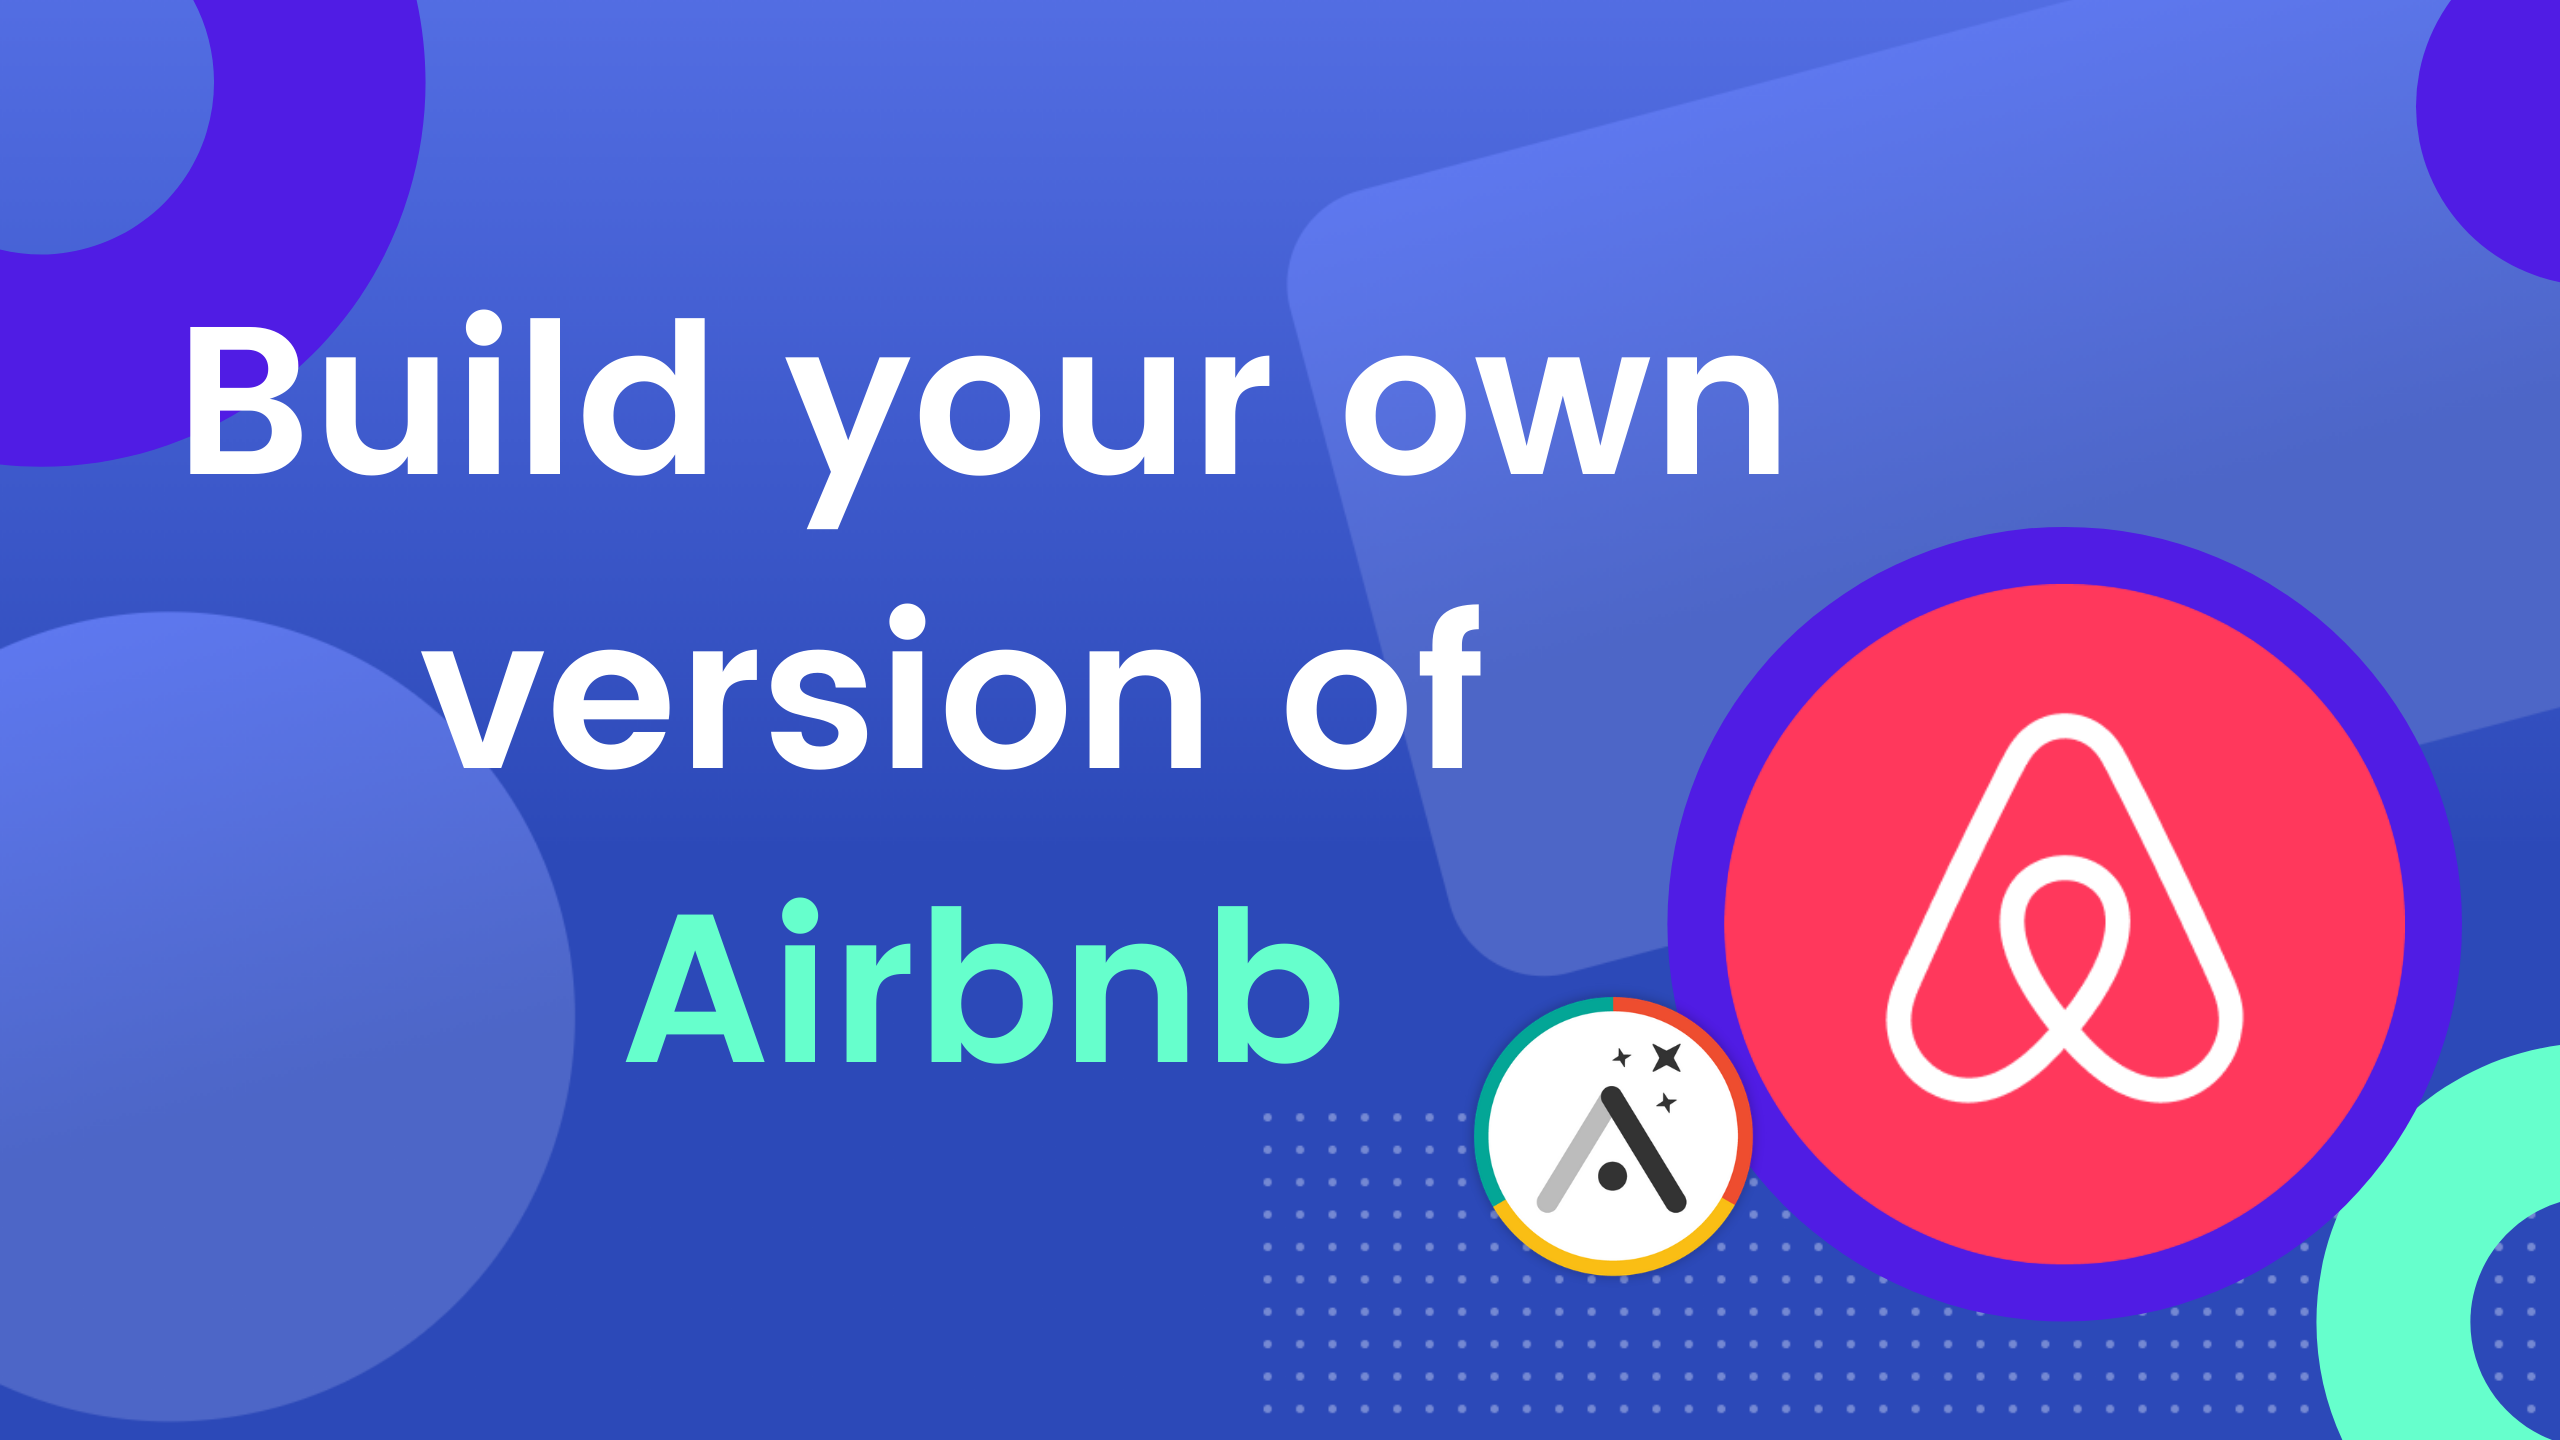 Build your own version of AirBnB